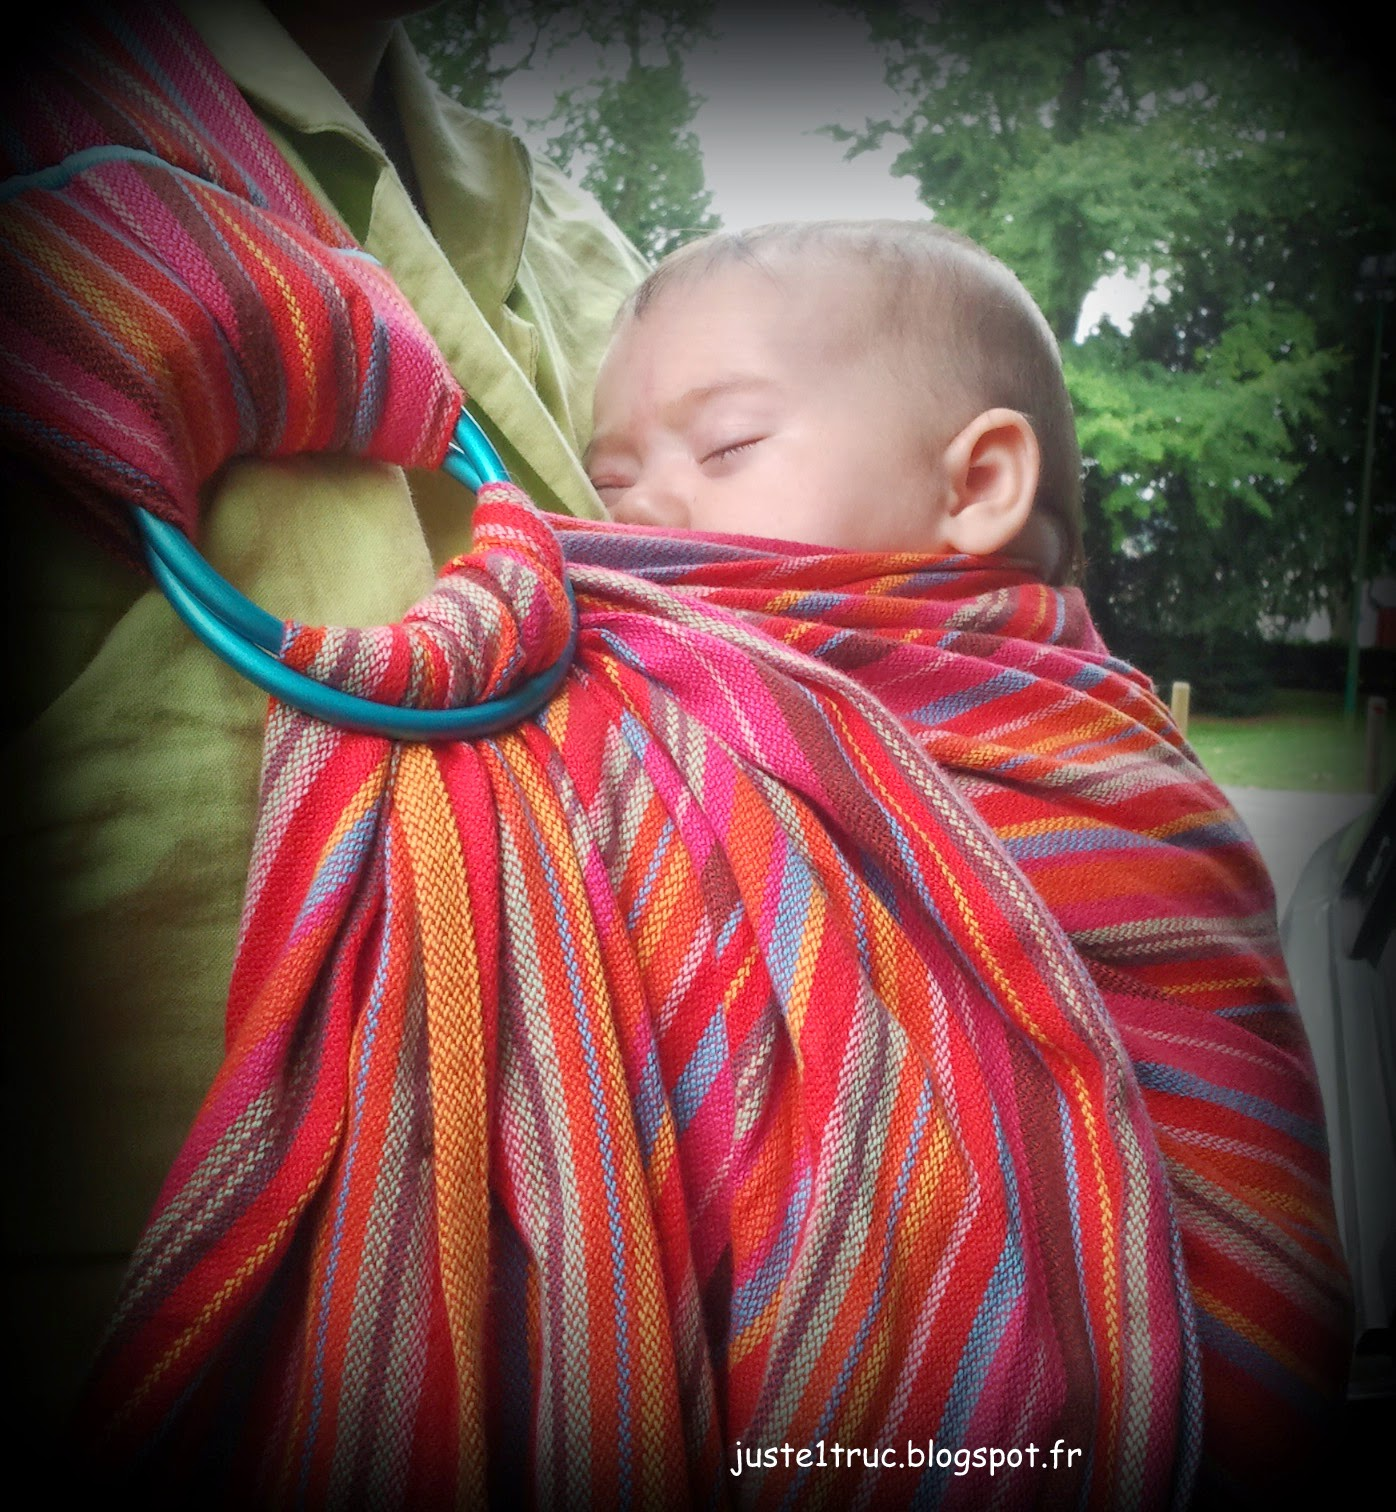 cododo allaitement maternidade apego attachment parenting maternagem amamentar ringsling babywearing sling